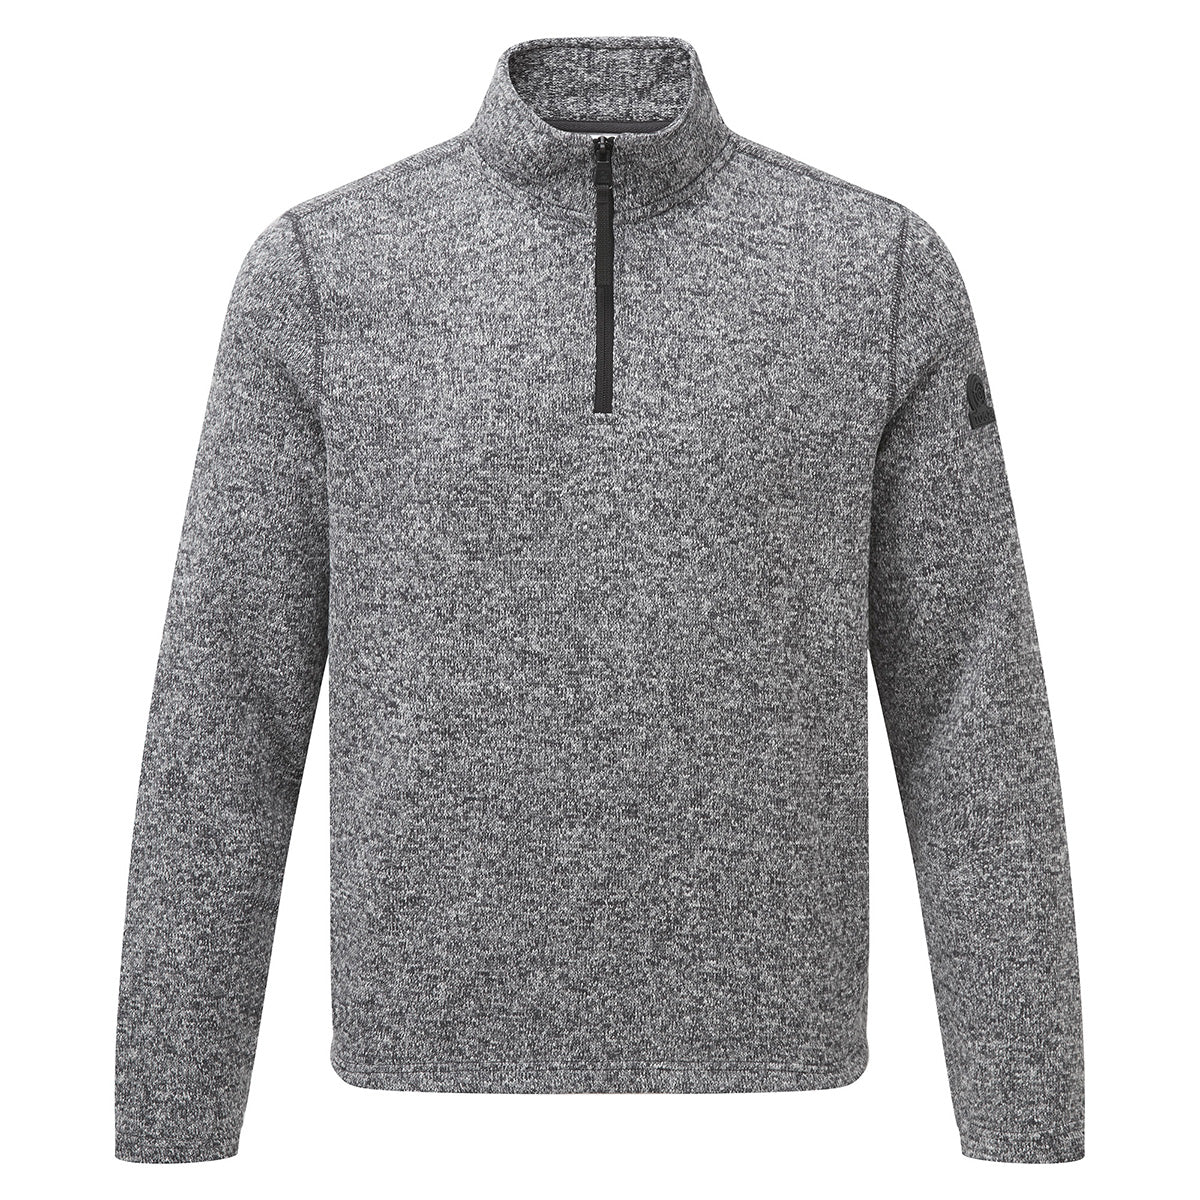 Monza Mens Knitlook Fleece Zipneck - Grey Marl image 4